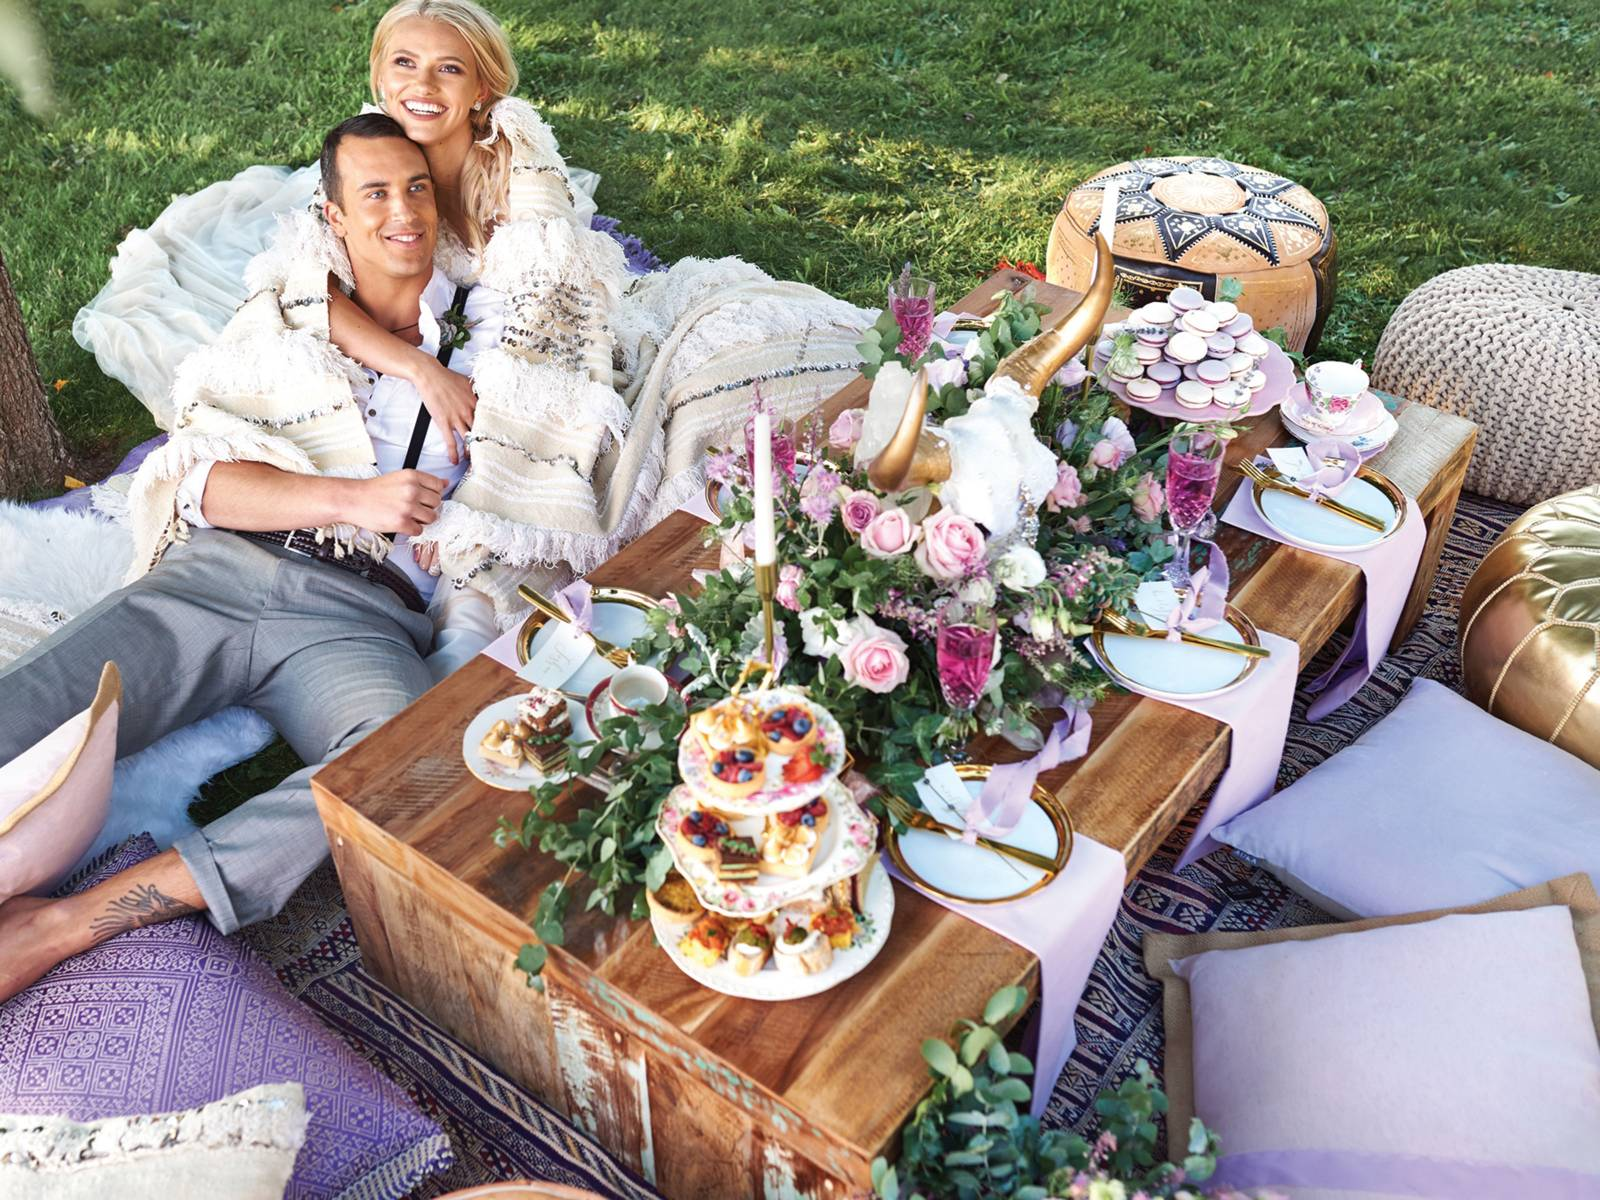 Bride and groom lounging by rustic wood table with pink and lavender florals, desserts and china